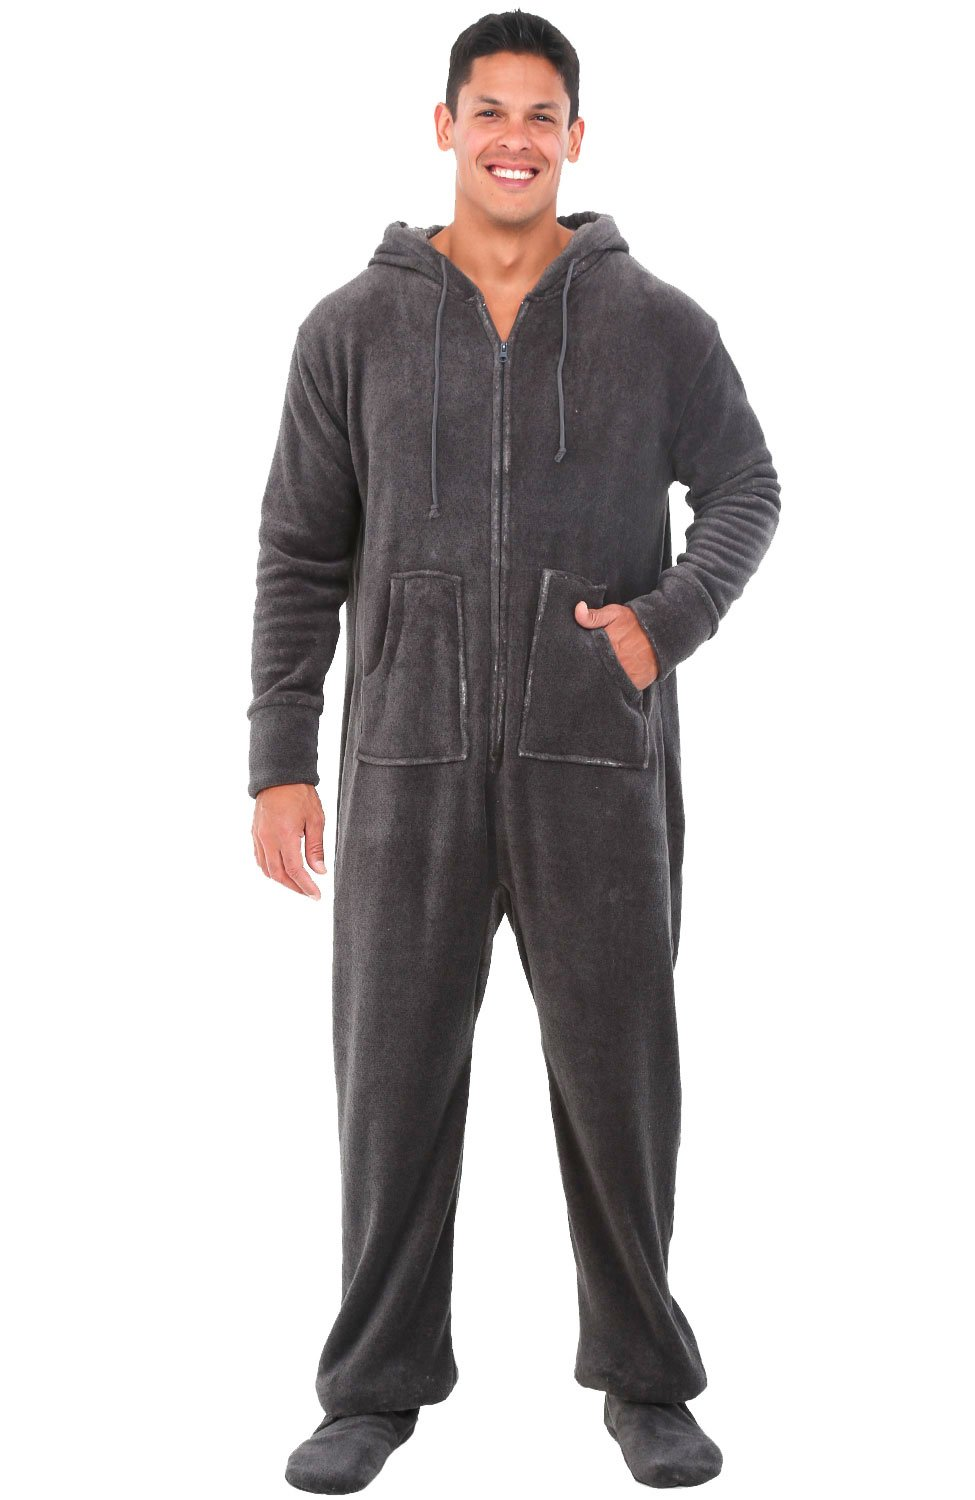 Alexander Del Rossa Mens Fleece Onesie, Hooded Footed Jumpsuit Pajamas, XL Vintage Heathered Grey (A0320ECLXL)